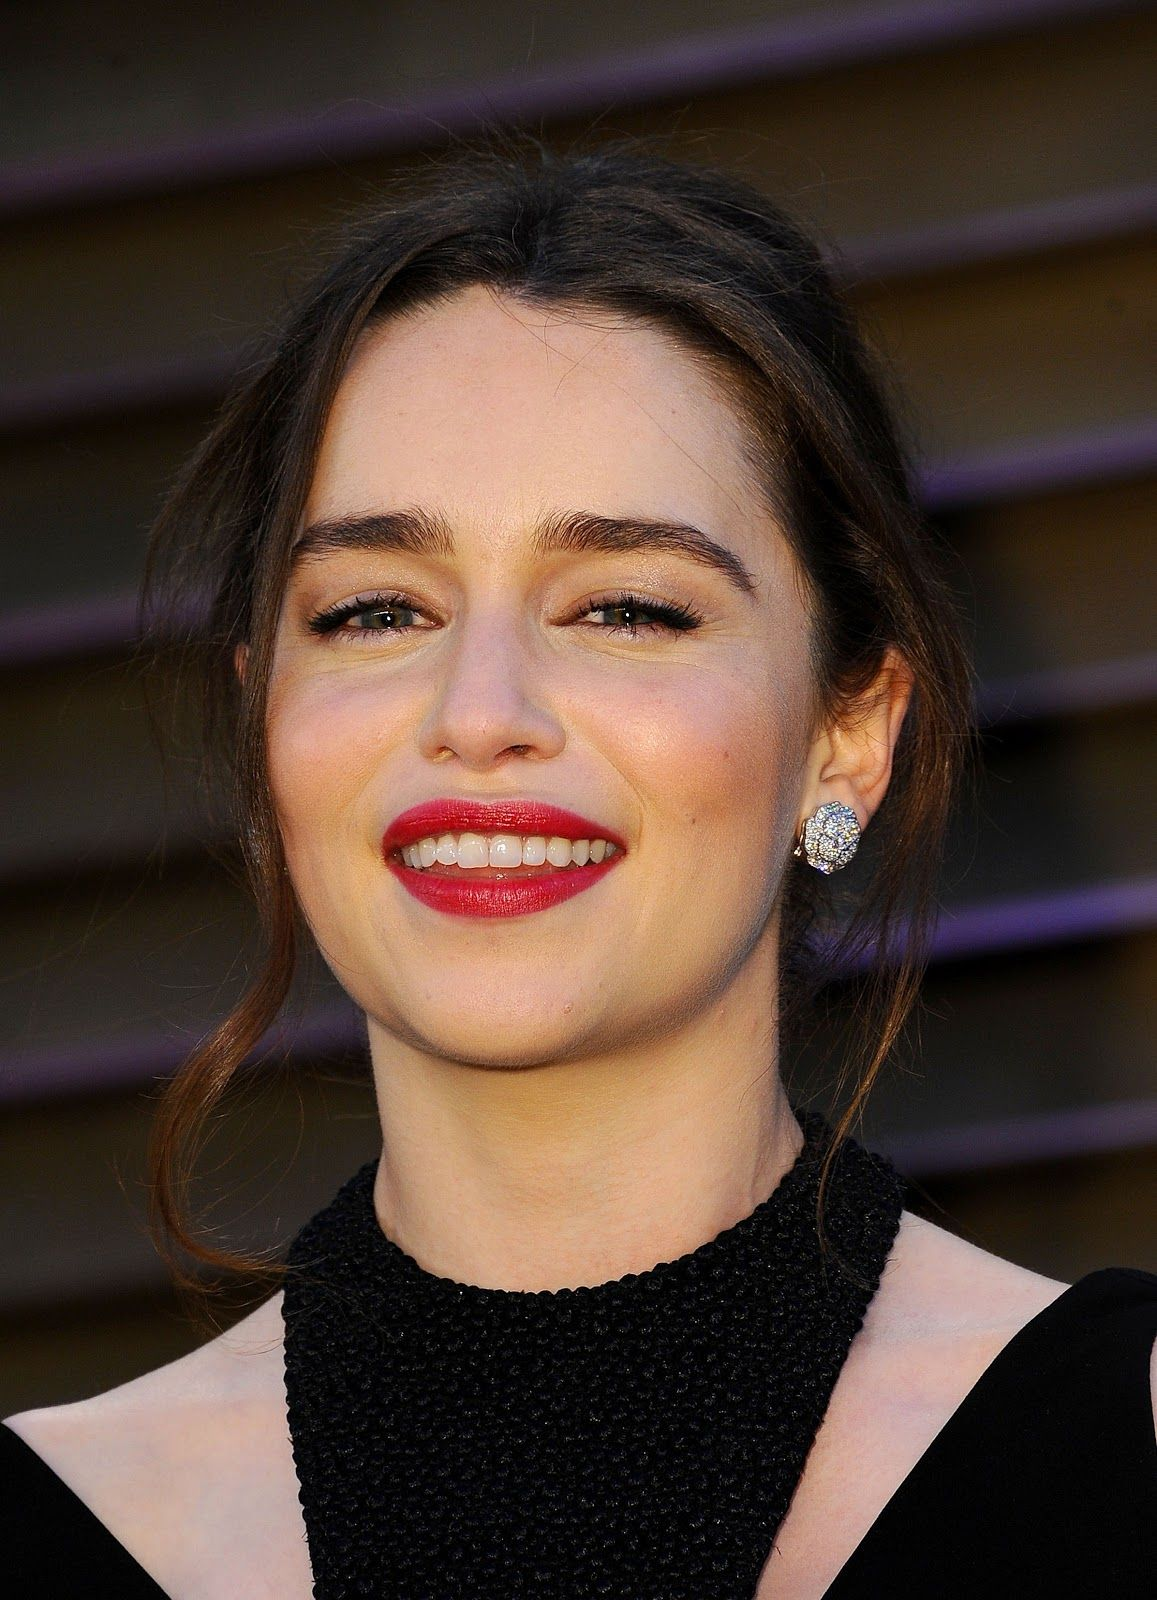 HD Photos Terminator Genisys Actress Emilia Clarke Full HD Images 1157x1600